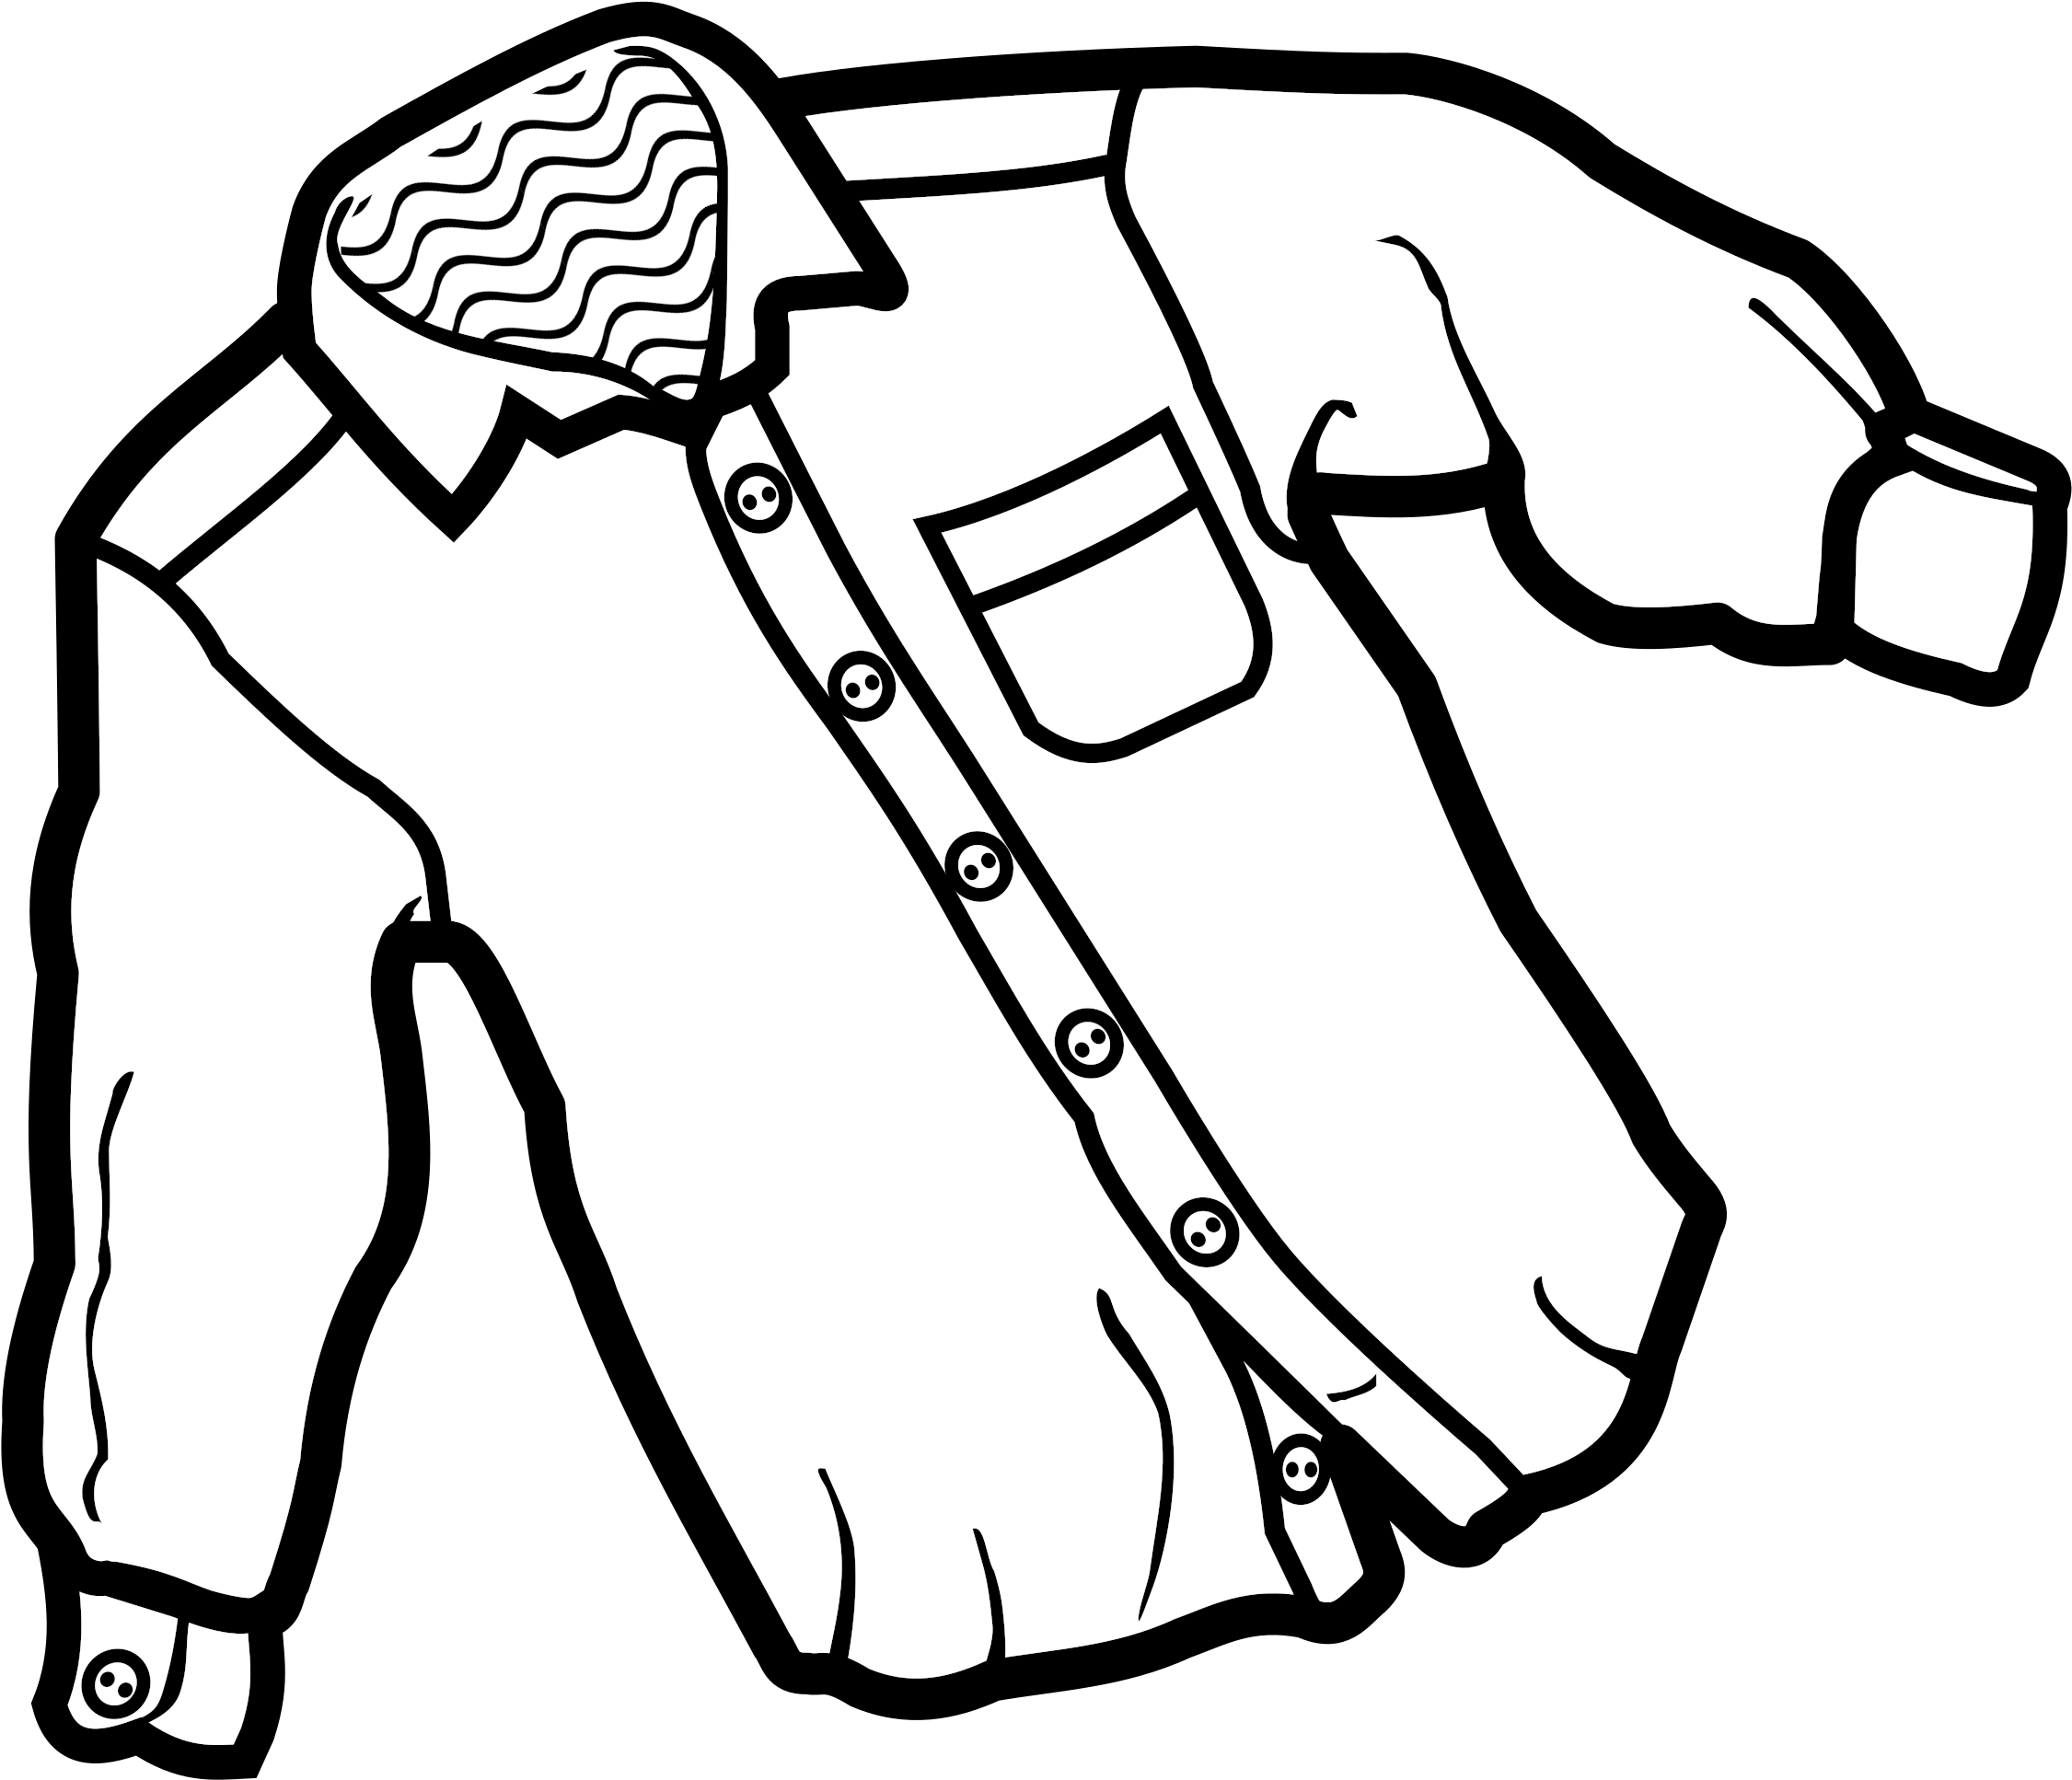 Download dress button up. Shirt clipart buttoned shirt image black and white download